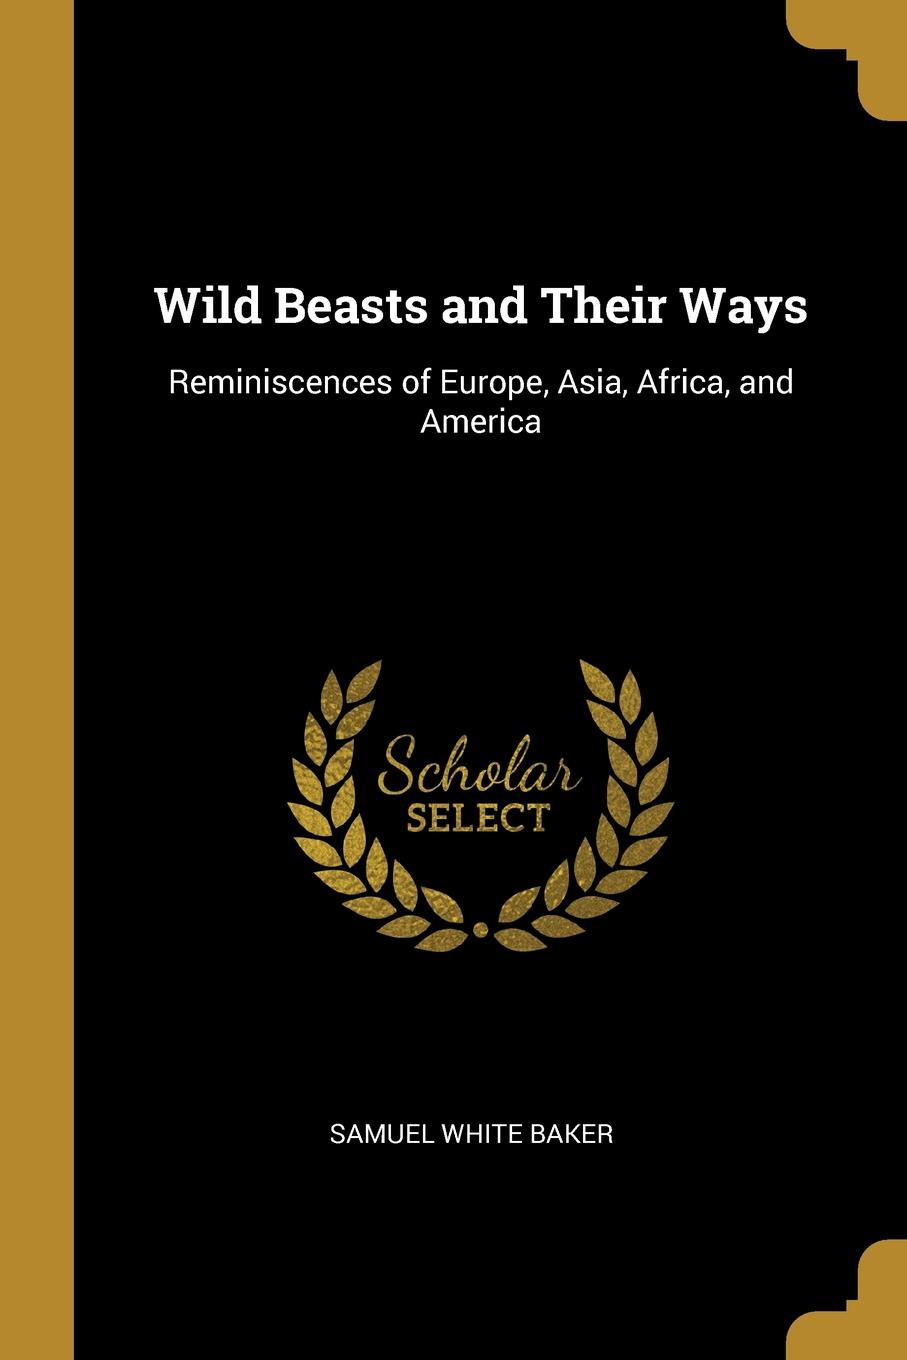 Samuel White Baker. Wild Beasts and Their Ways. Reminiscences of Europe, Asia, Africa, and America